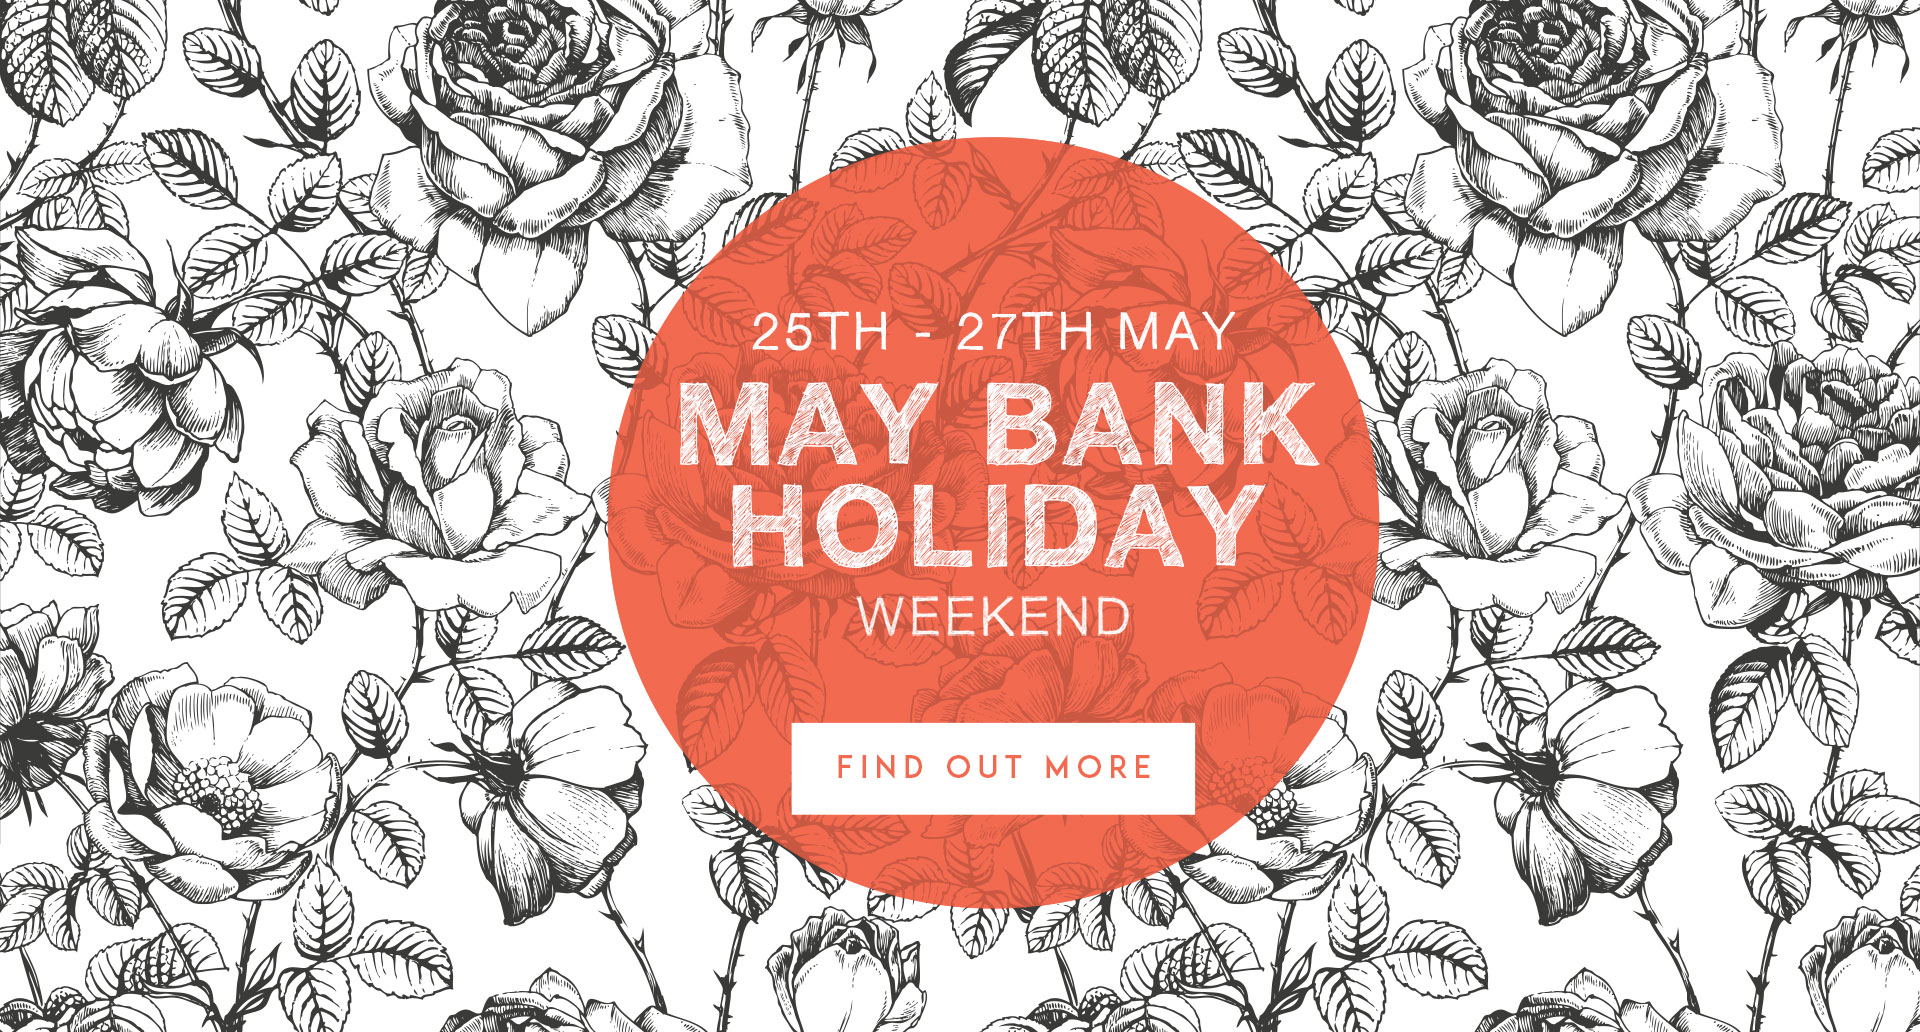 May Bank Holiday at The White Hart